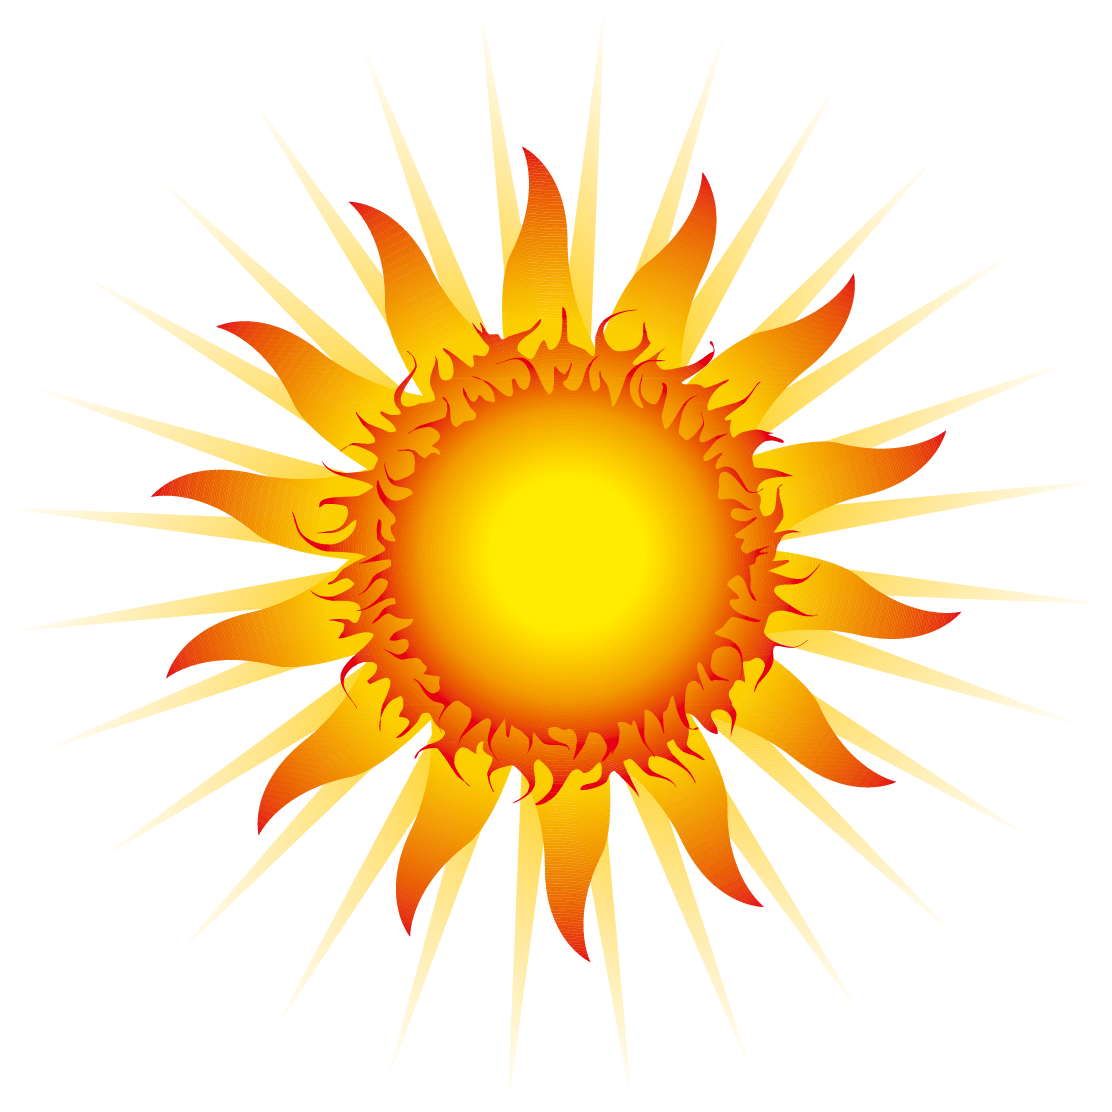 Free clipart sun rays png download Euclidean vector Clip art - Cool sun rays 1112*1112 transprent Png ... png download